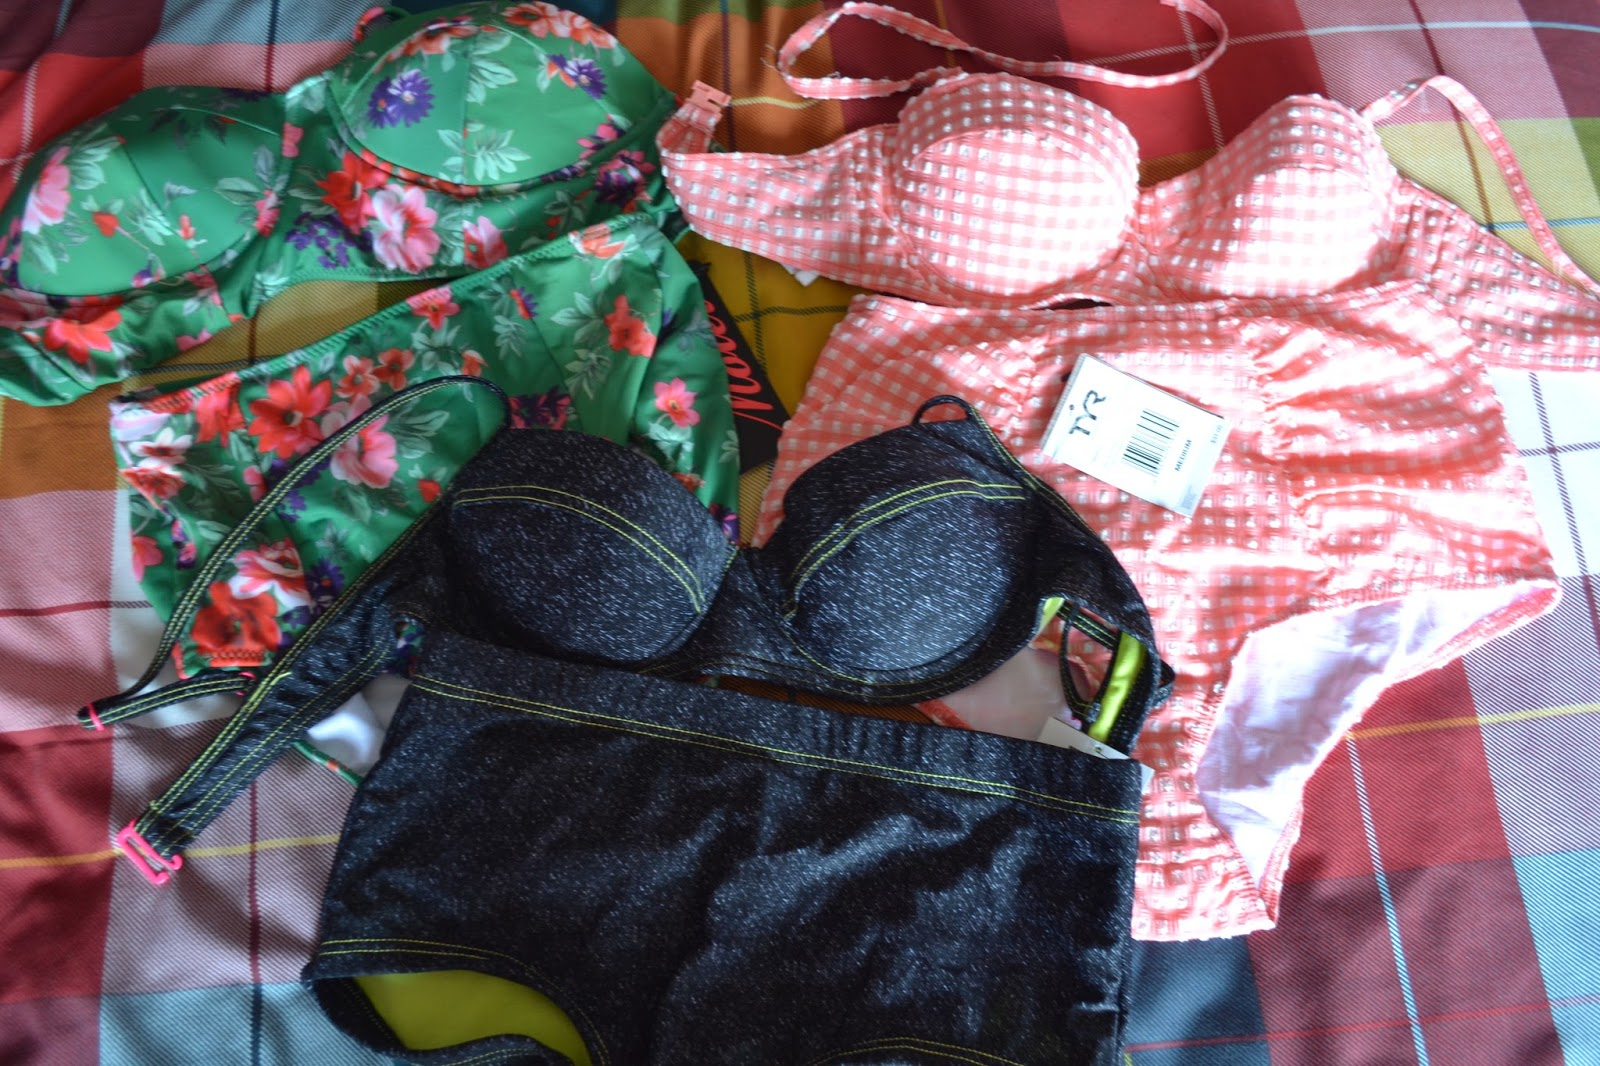 3 bikinis: pink gingham, faux denim and green tropical print